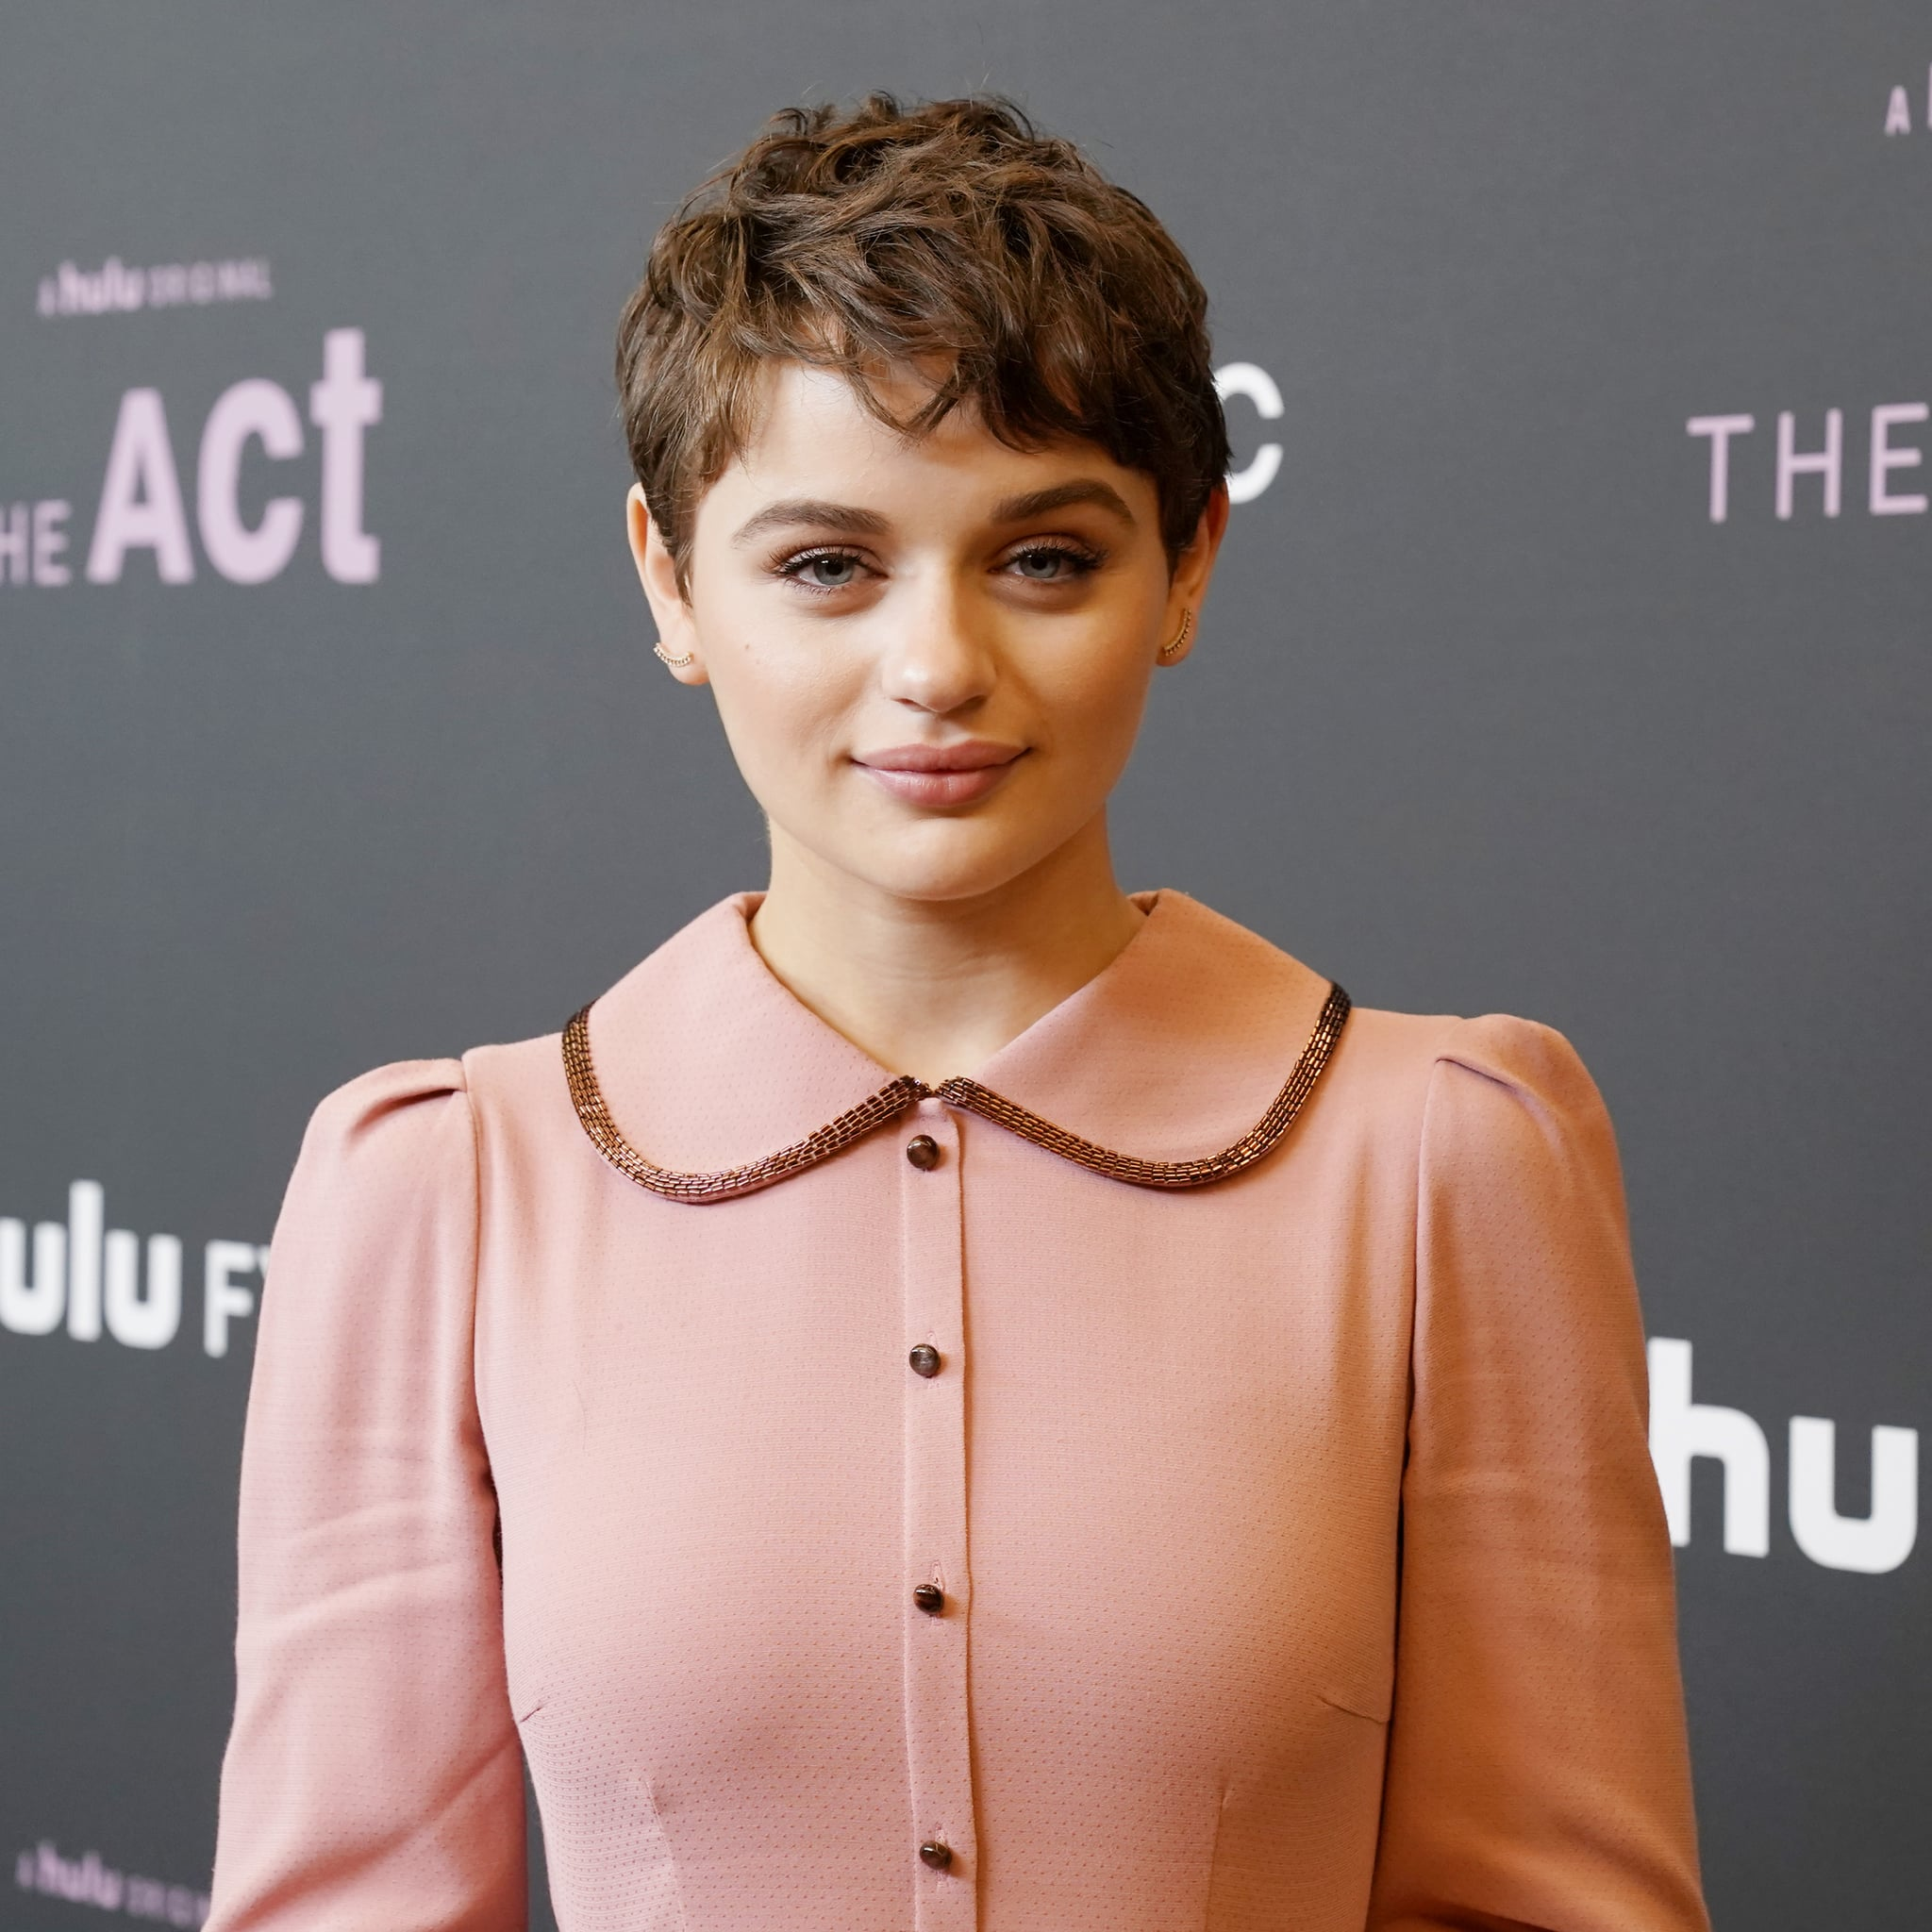 Joey King's Reaction to Emmy Nomination For The Act 2019 | POPSUGAR Entertainment UK